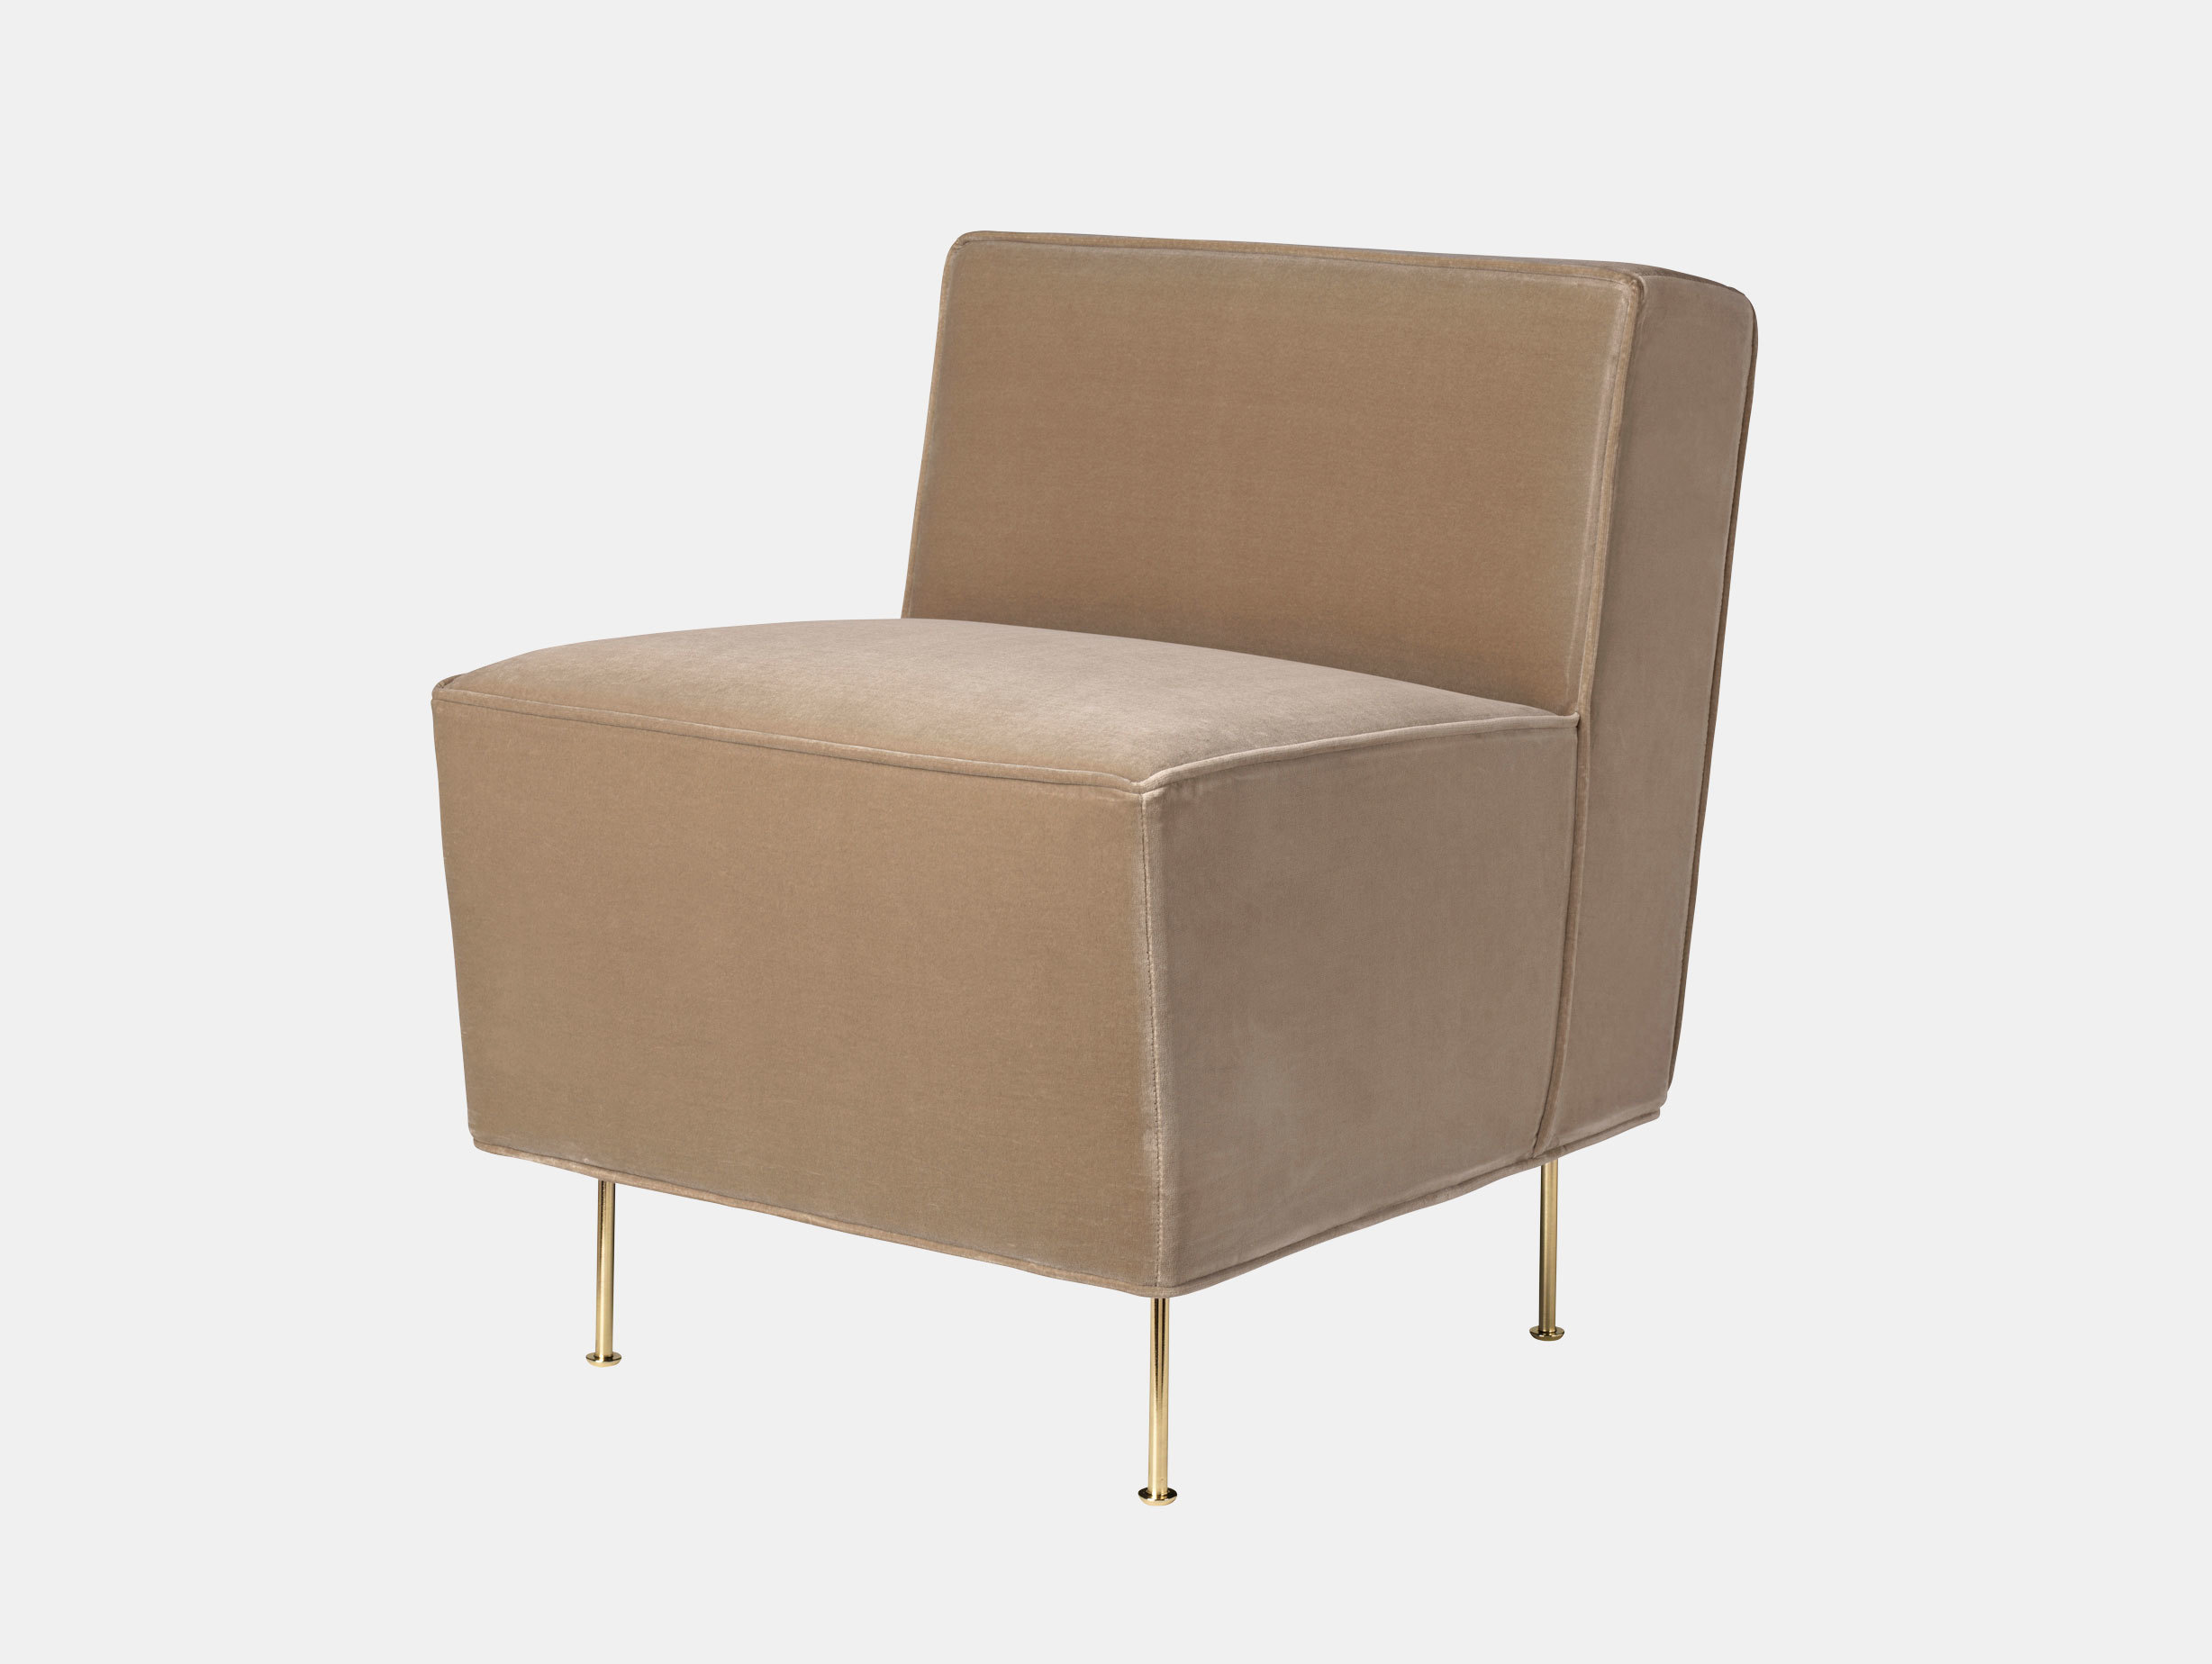 Modern Line Dining Height Lounge Chair image 1